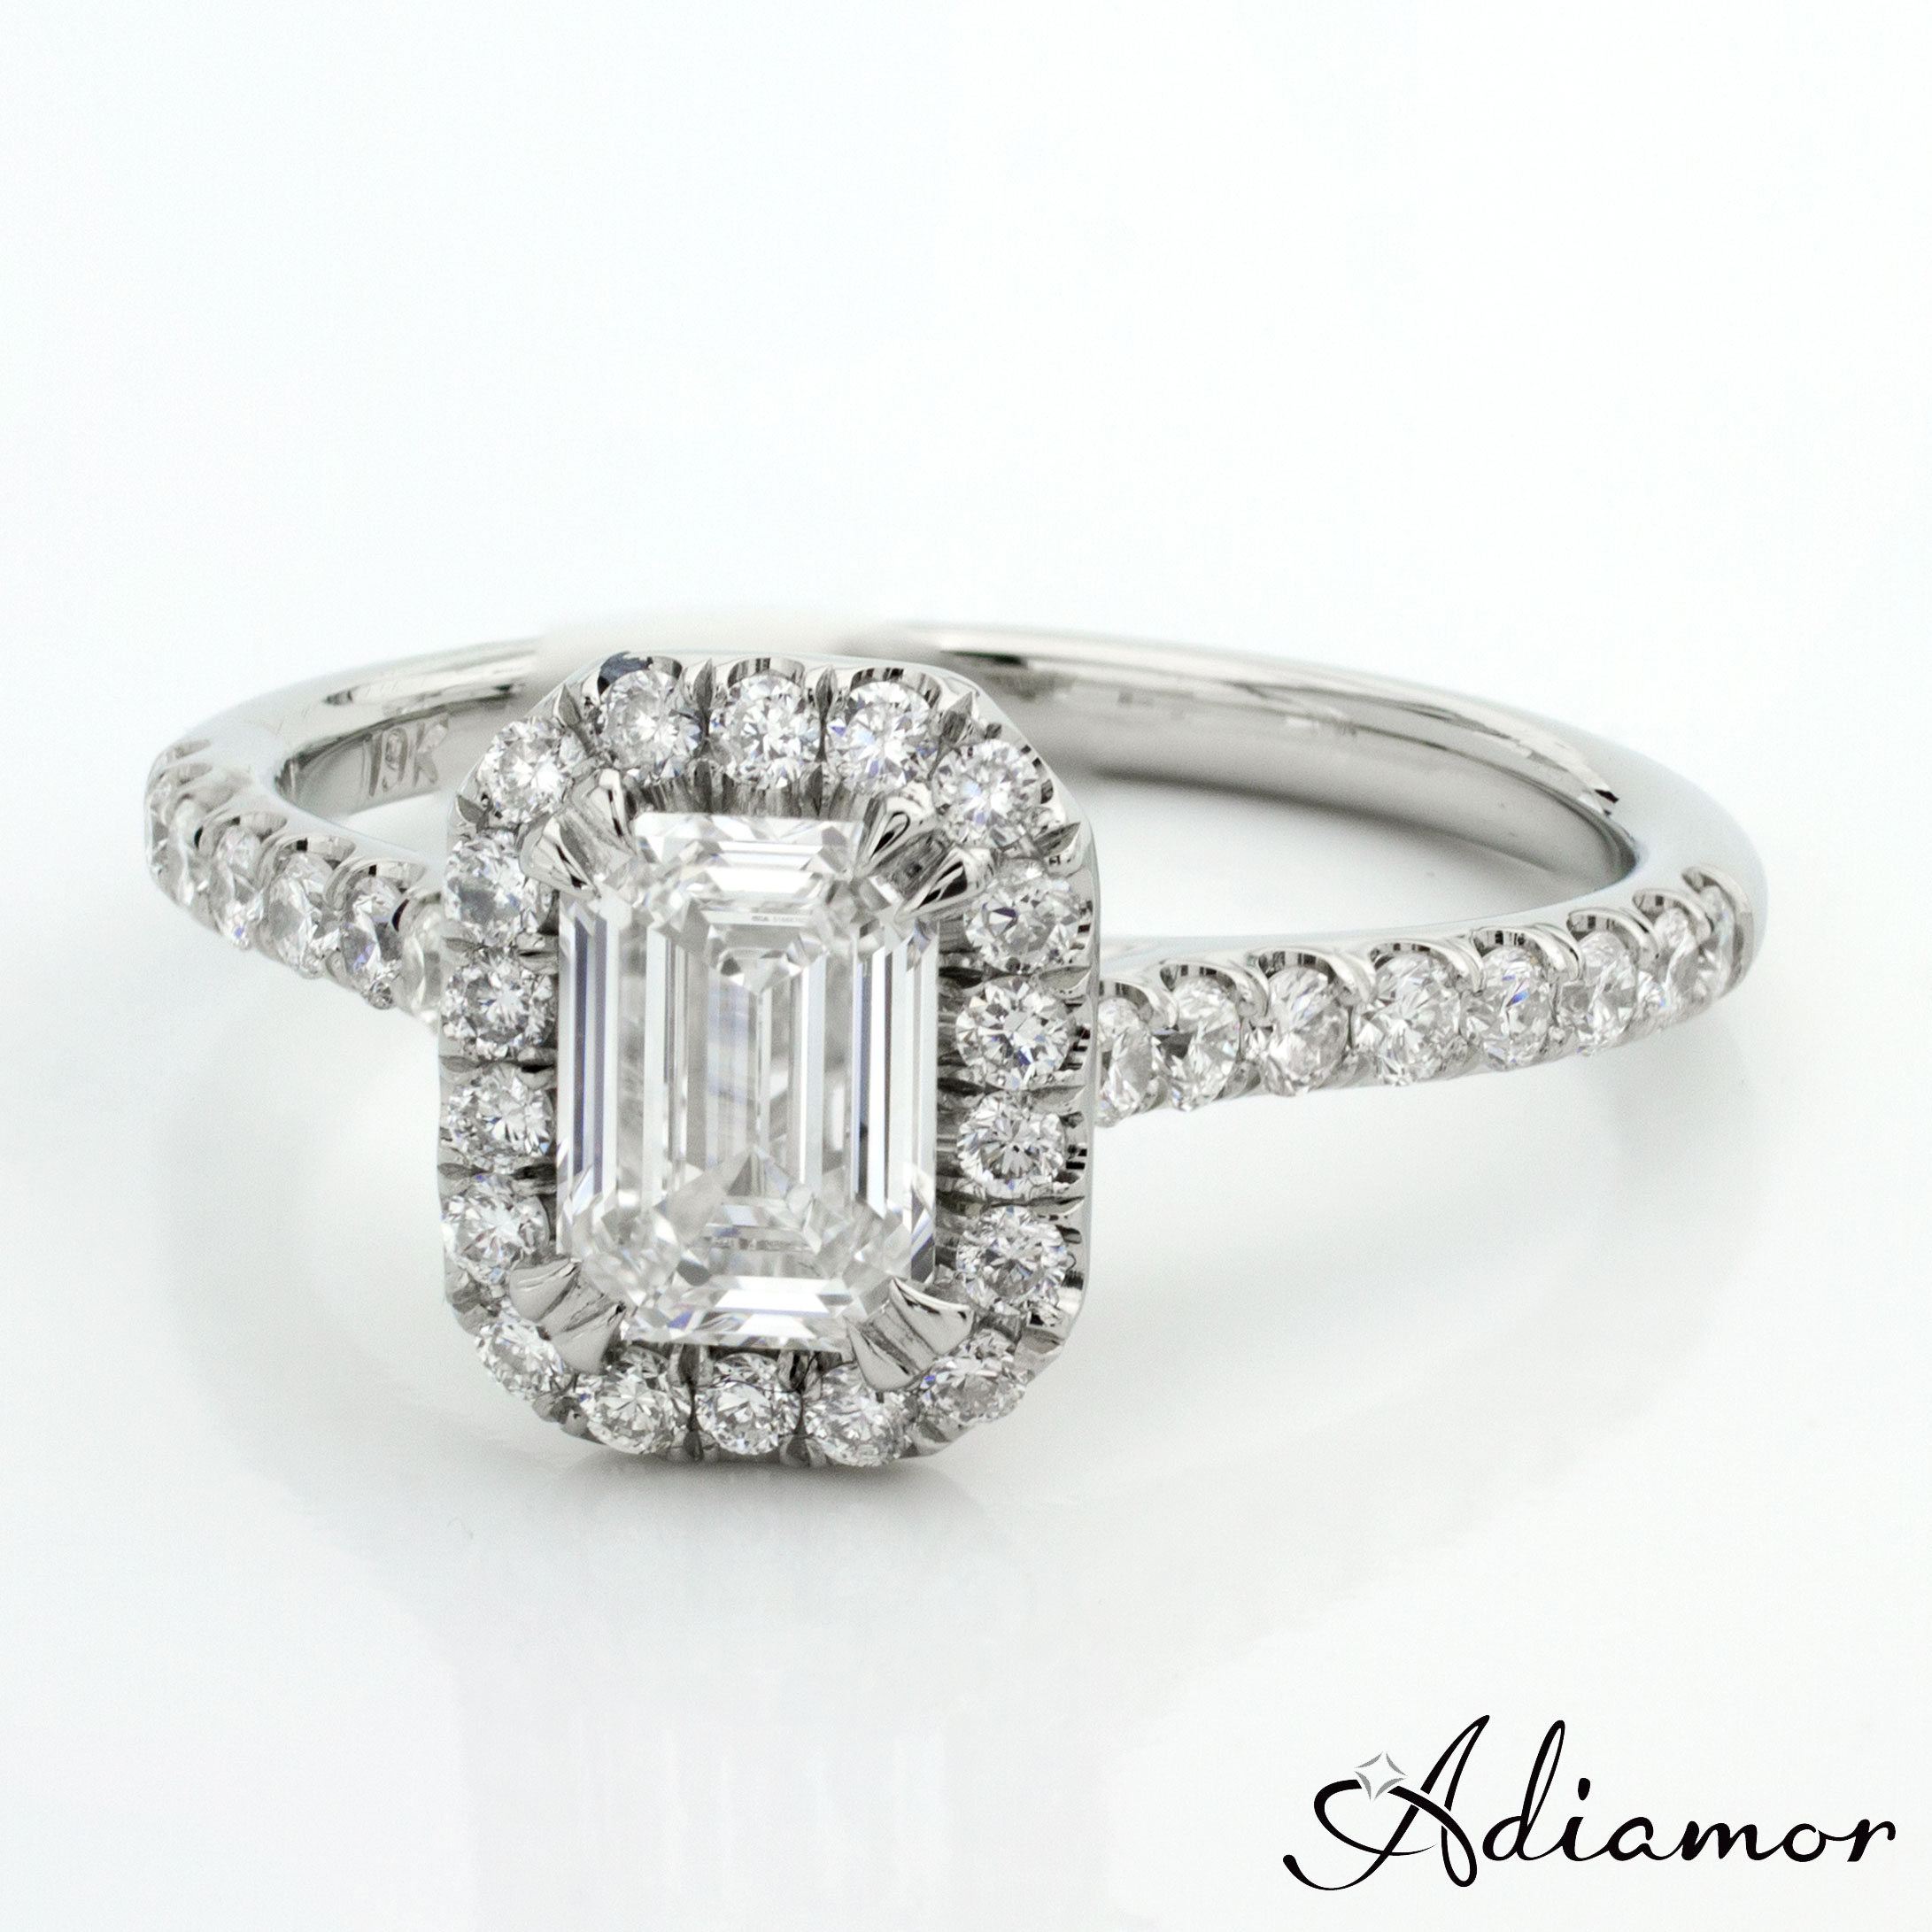 halo engagement rings archives page 2 of 2 adiamor blog